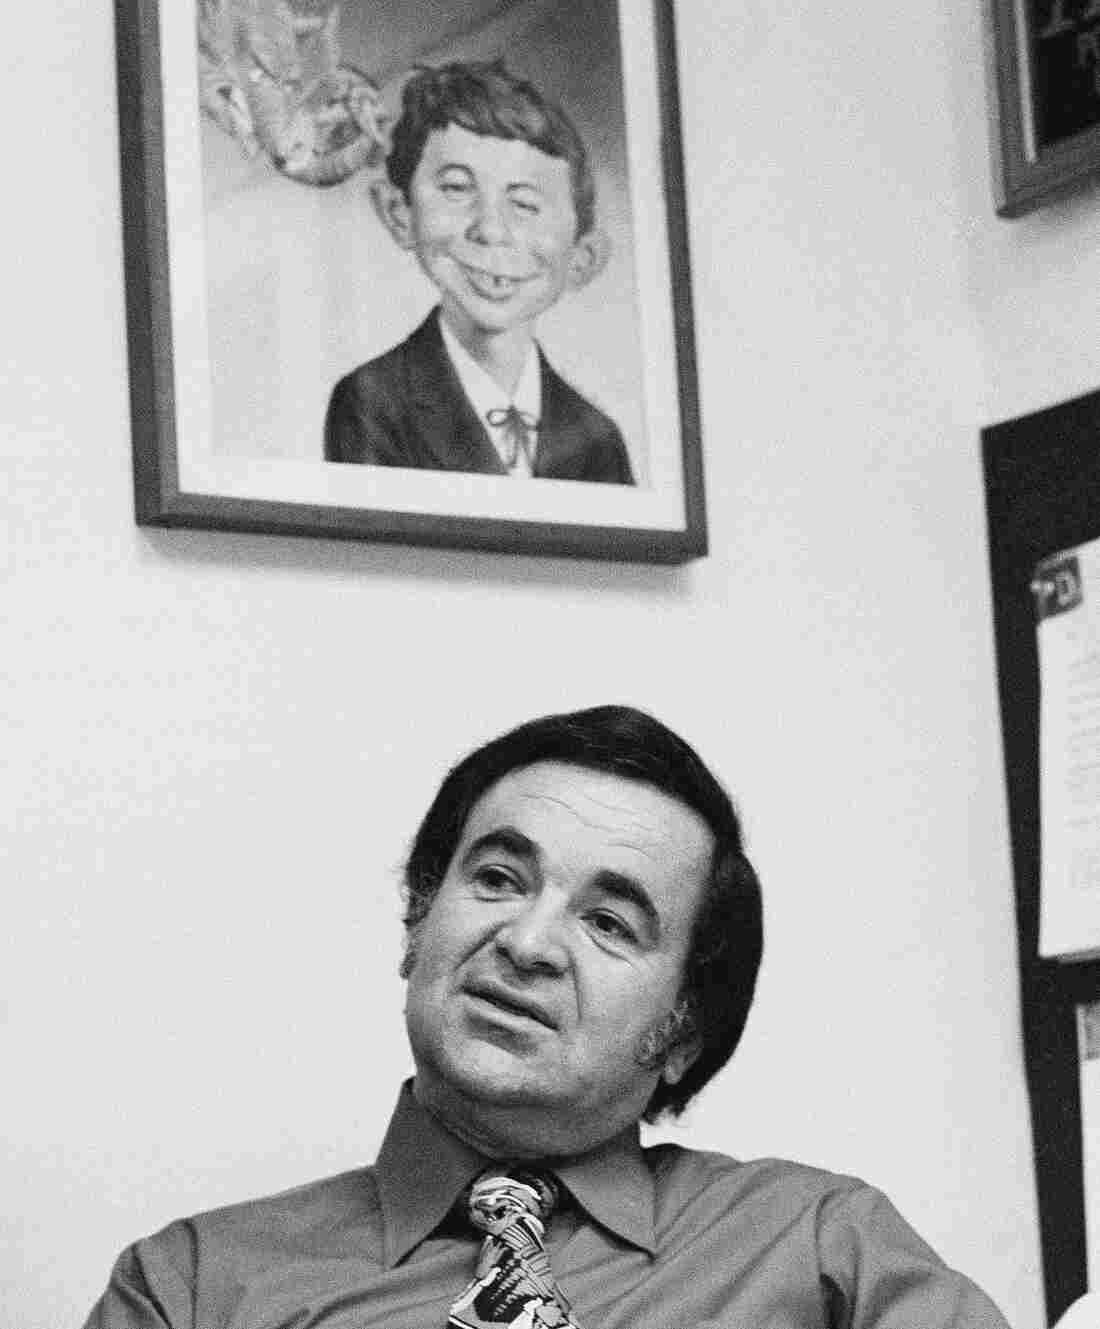 Editor Al Feldstein works on page layouts in his office at Mad magazine's New York headquarters in 1972. A poster with the iconic character Alfred E. Neuman hangs on the wall behind him.